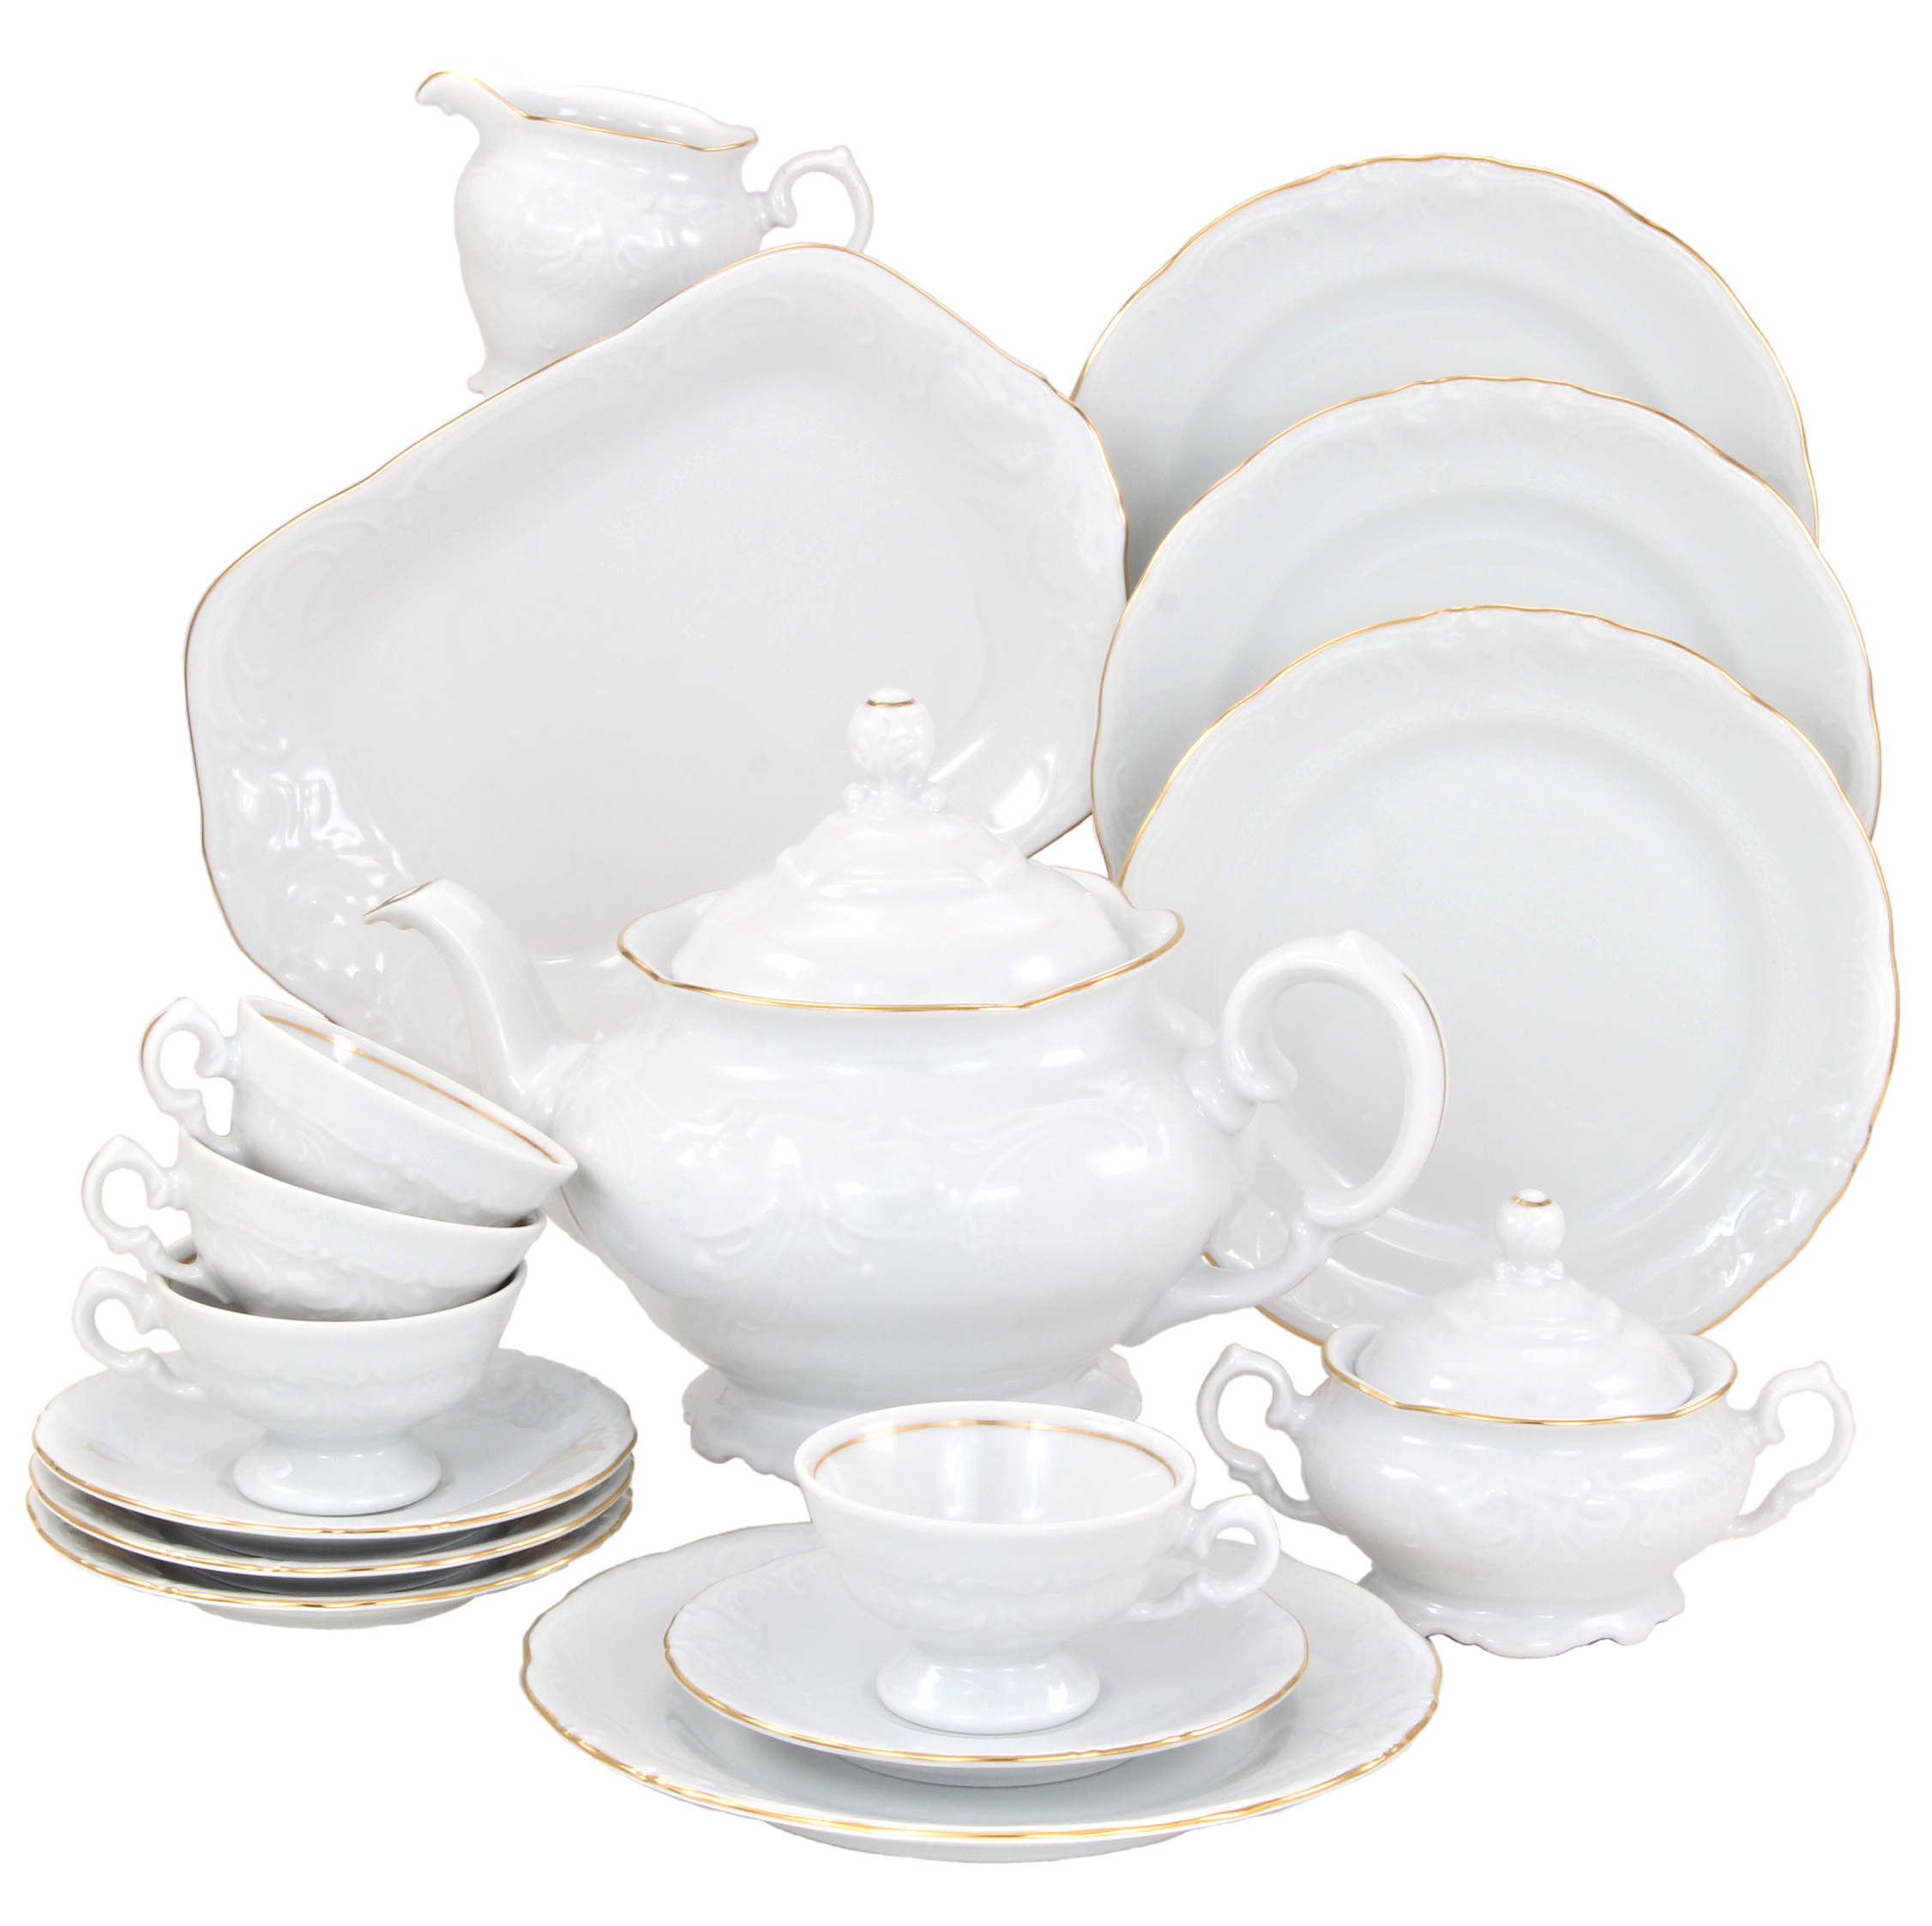 Elegance Fine China Tea Set for Children